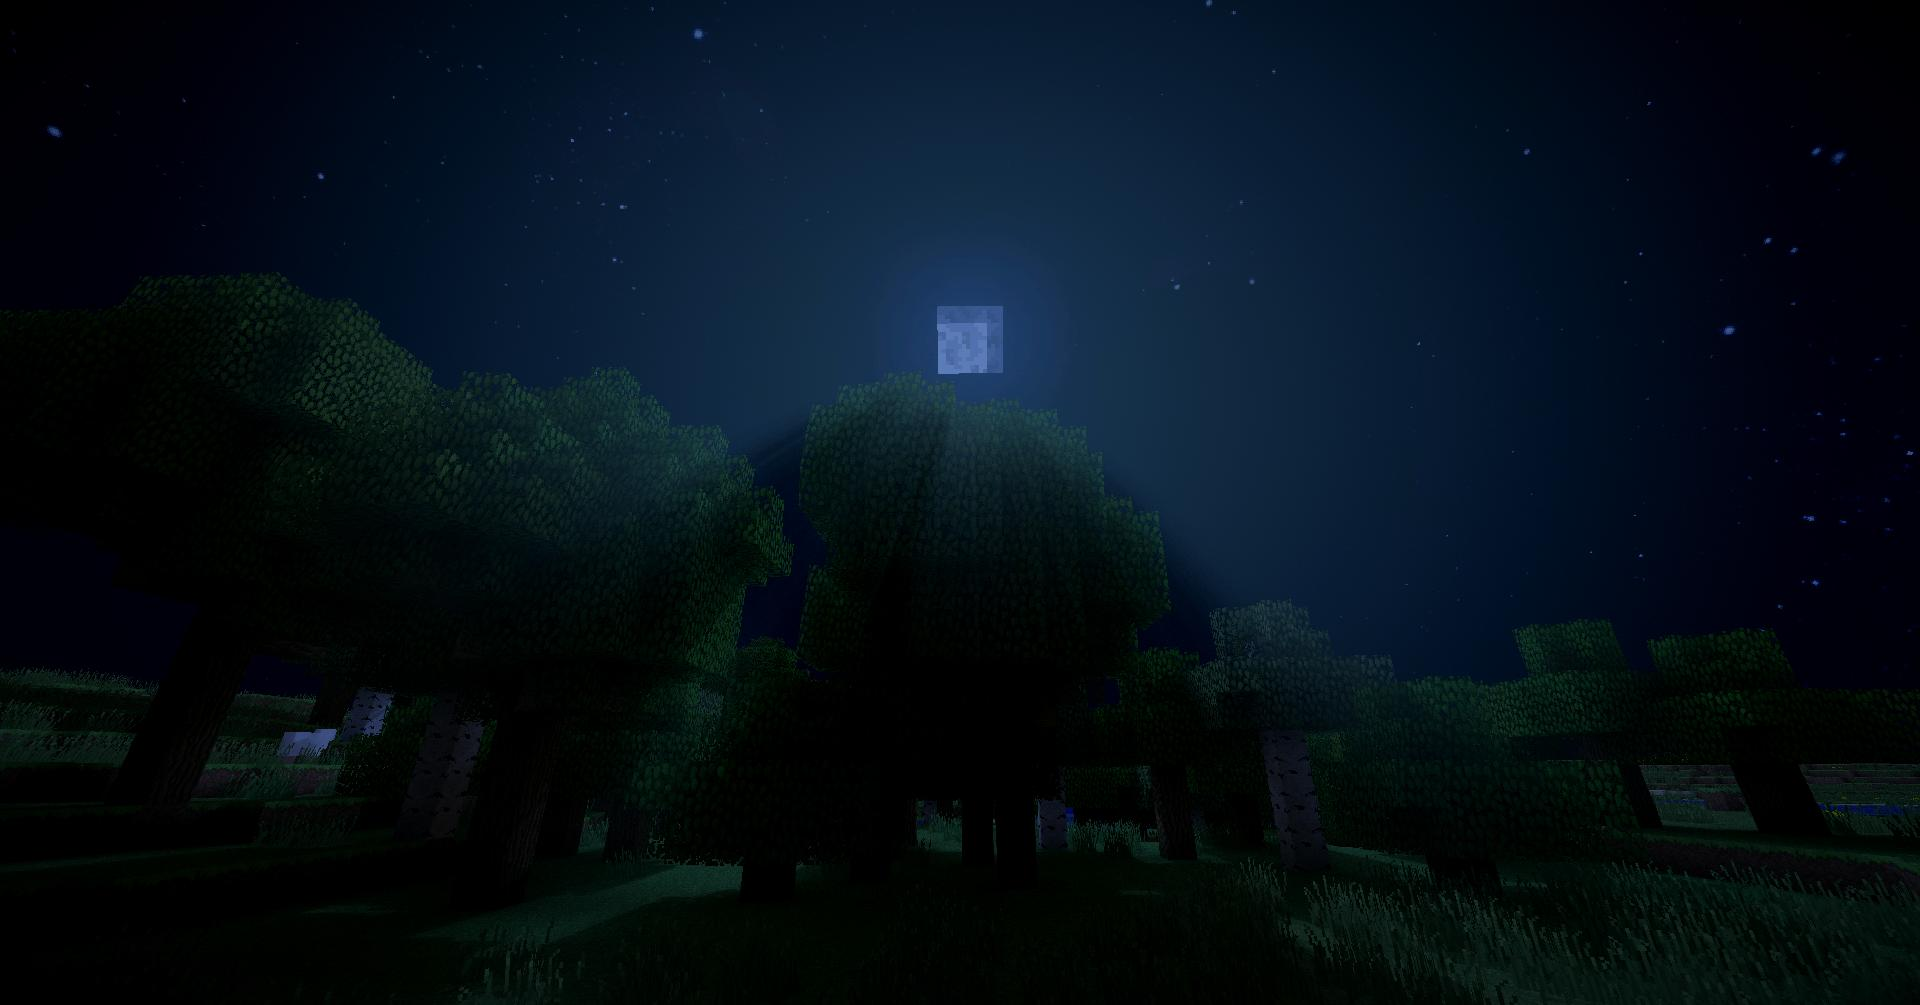 http://cdn.file-minecraft.com/Mods/Sildurs-Shaders-Mod-3.jpg